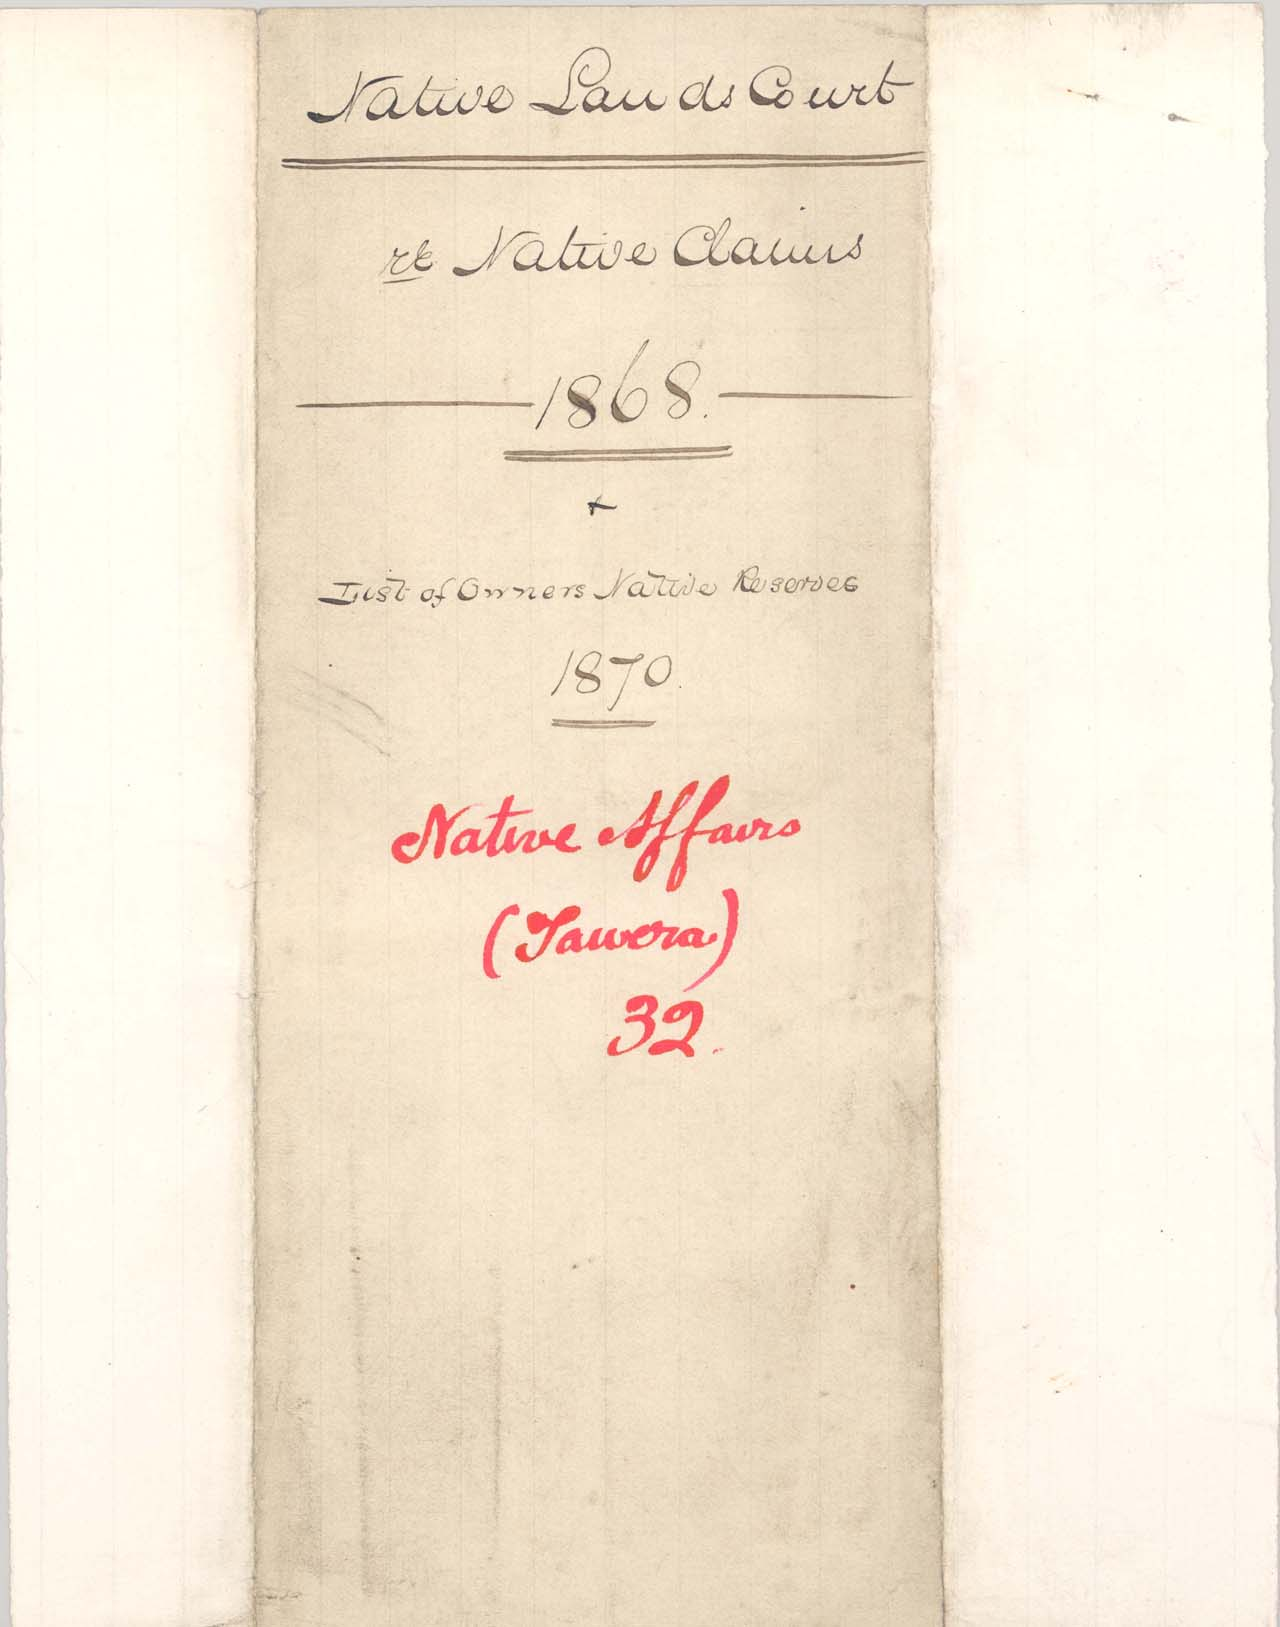 List of Owners, Tawera Reserve - 1868 - Cover